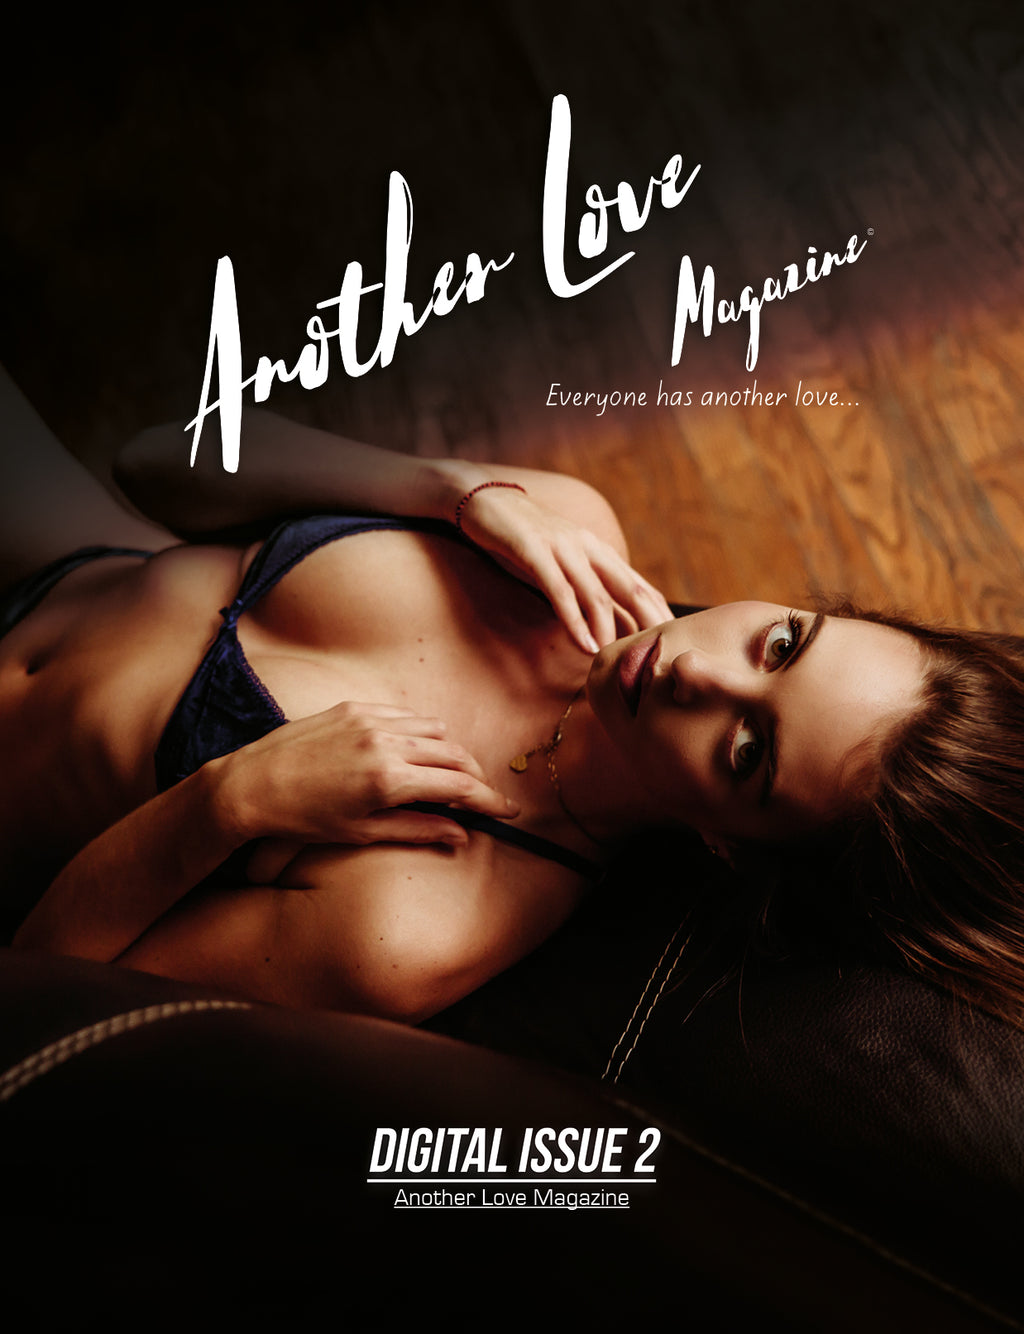 Another Love Magazine - Digital Issue 2